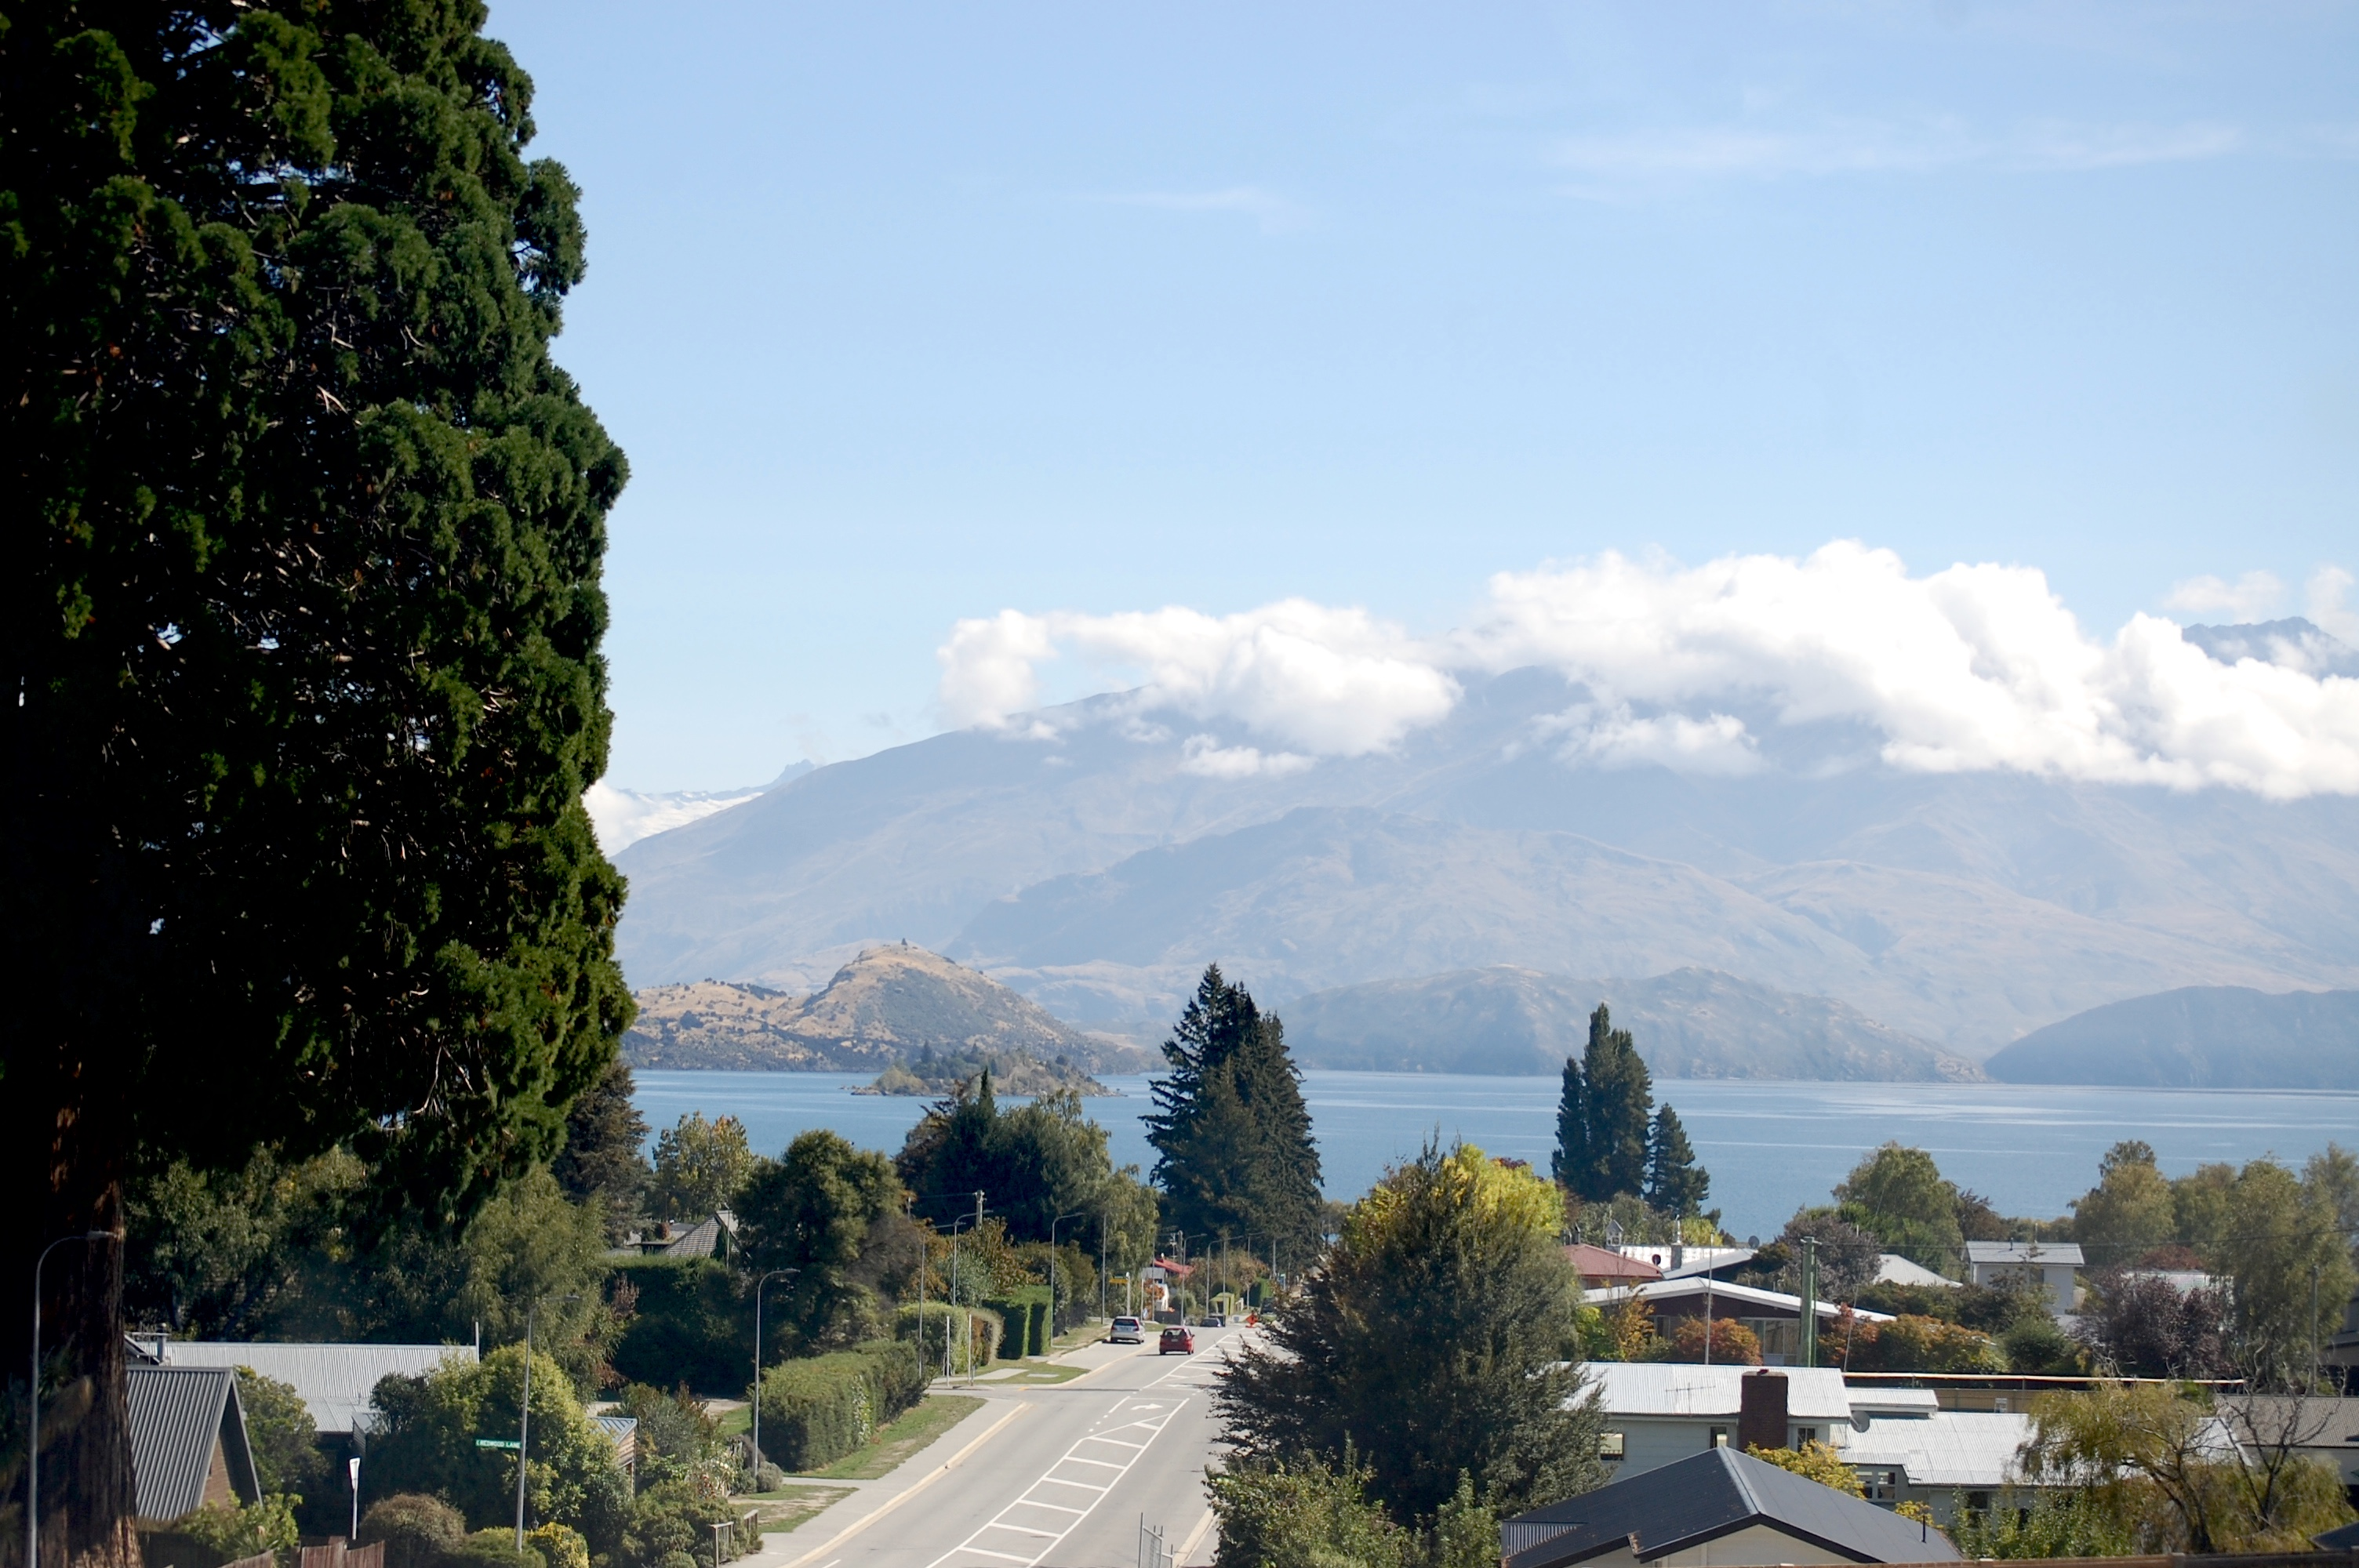 Coming into Wanaka